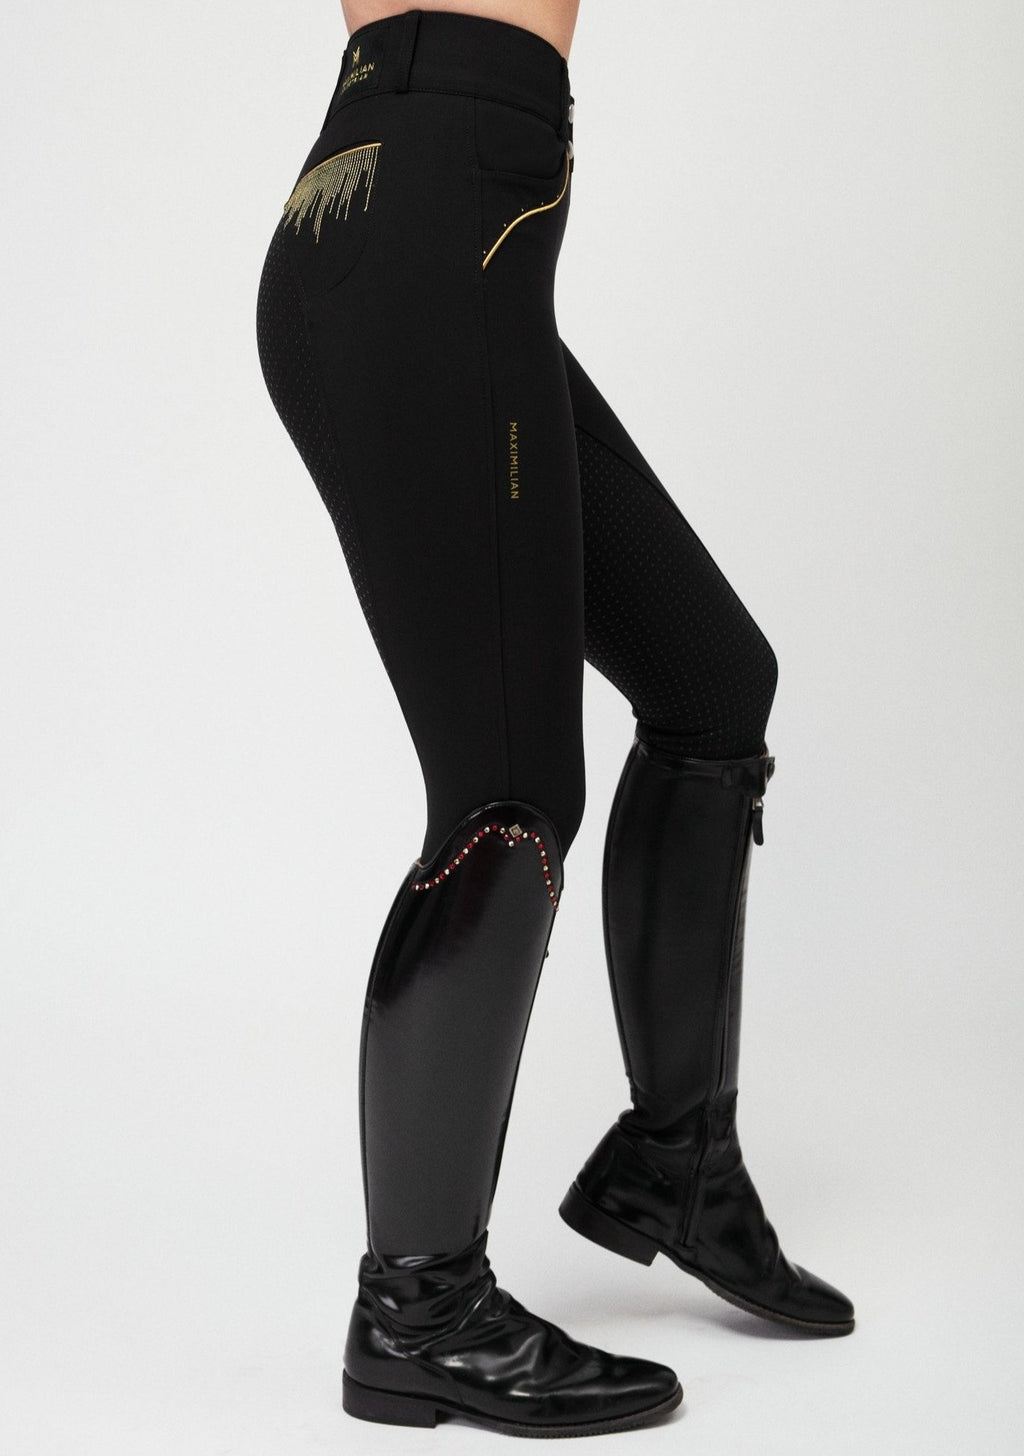 Vienna Full Grip Breeches - Black & Gold